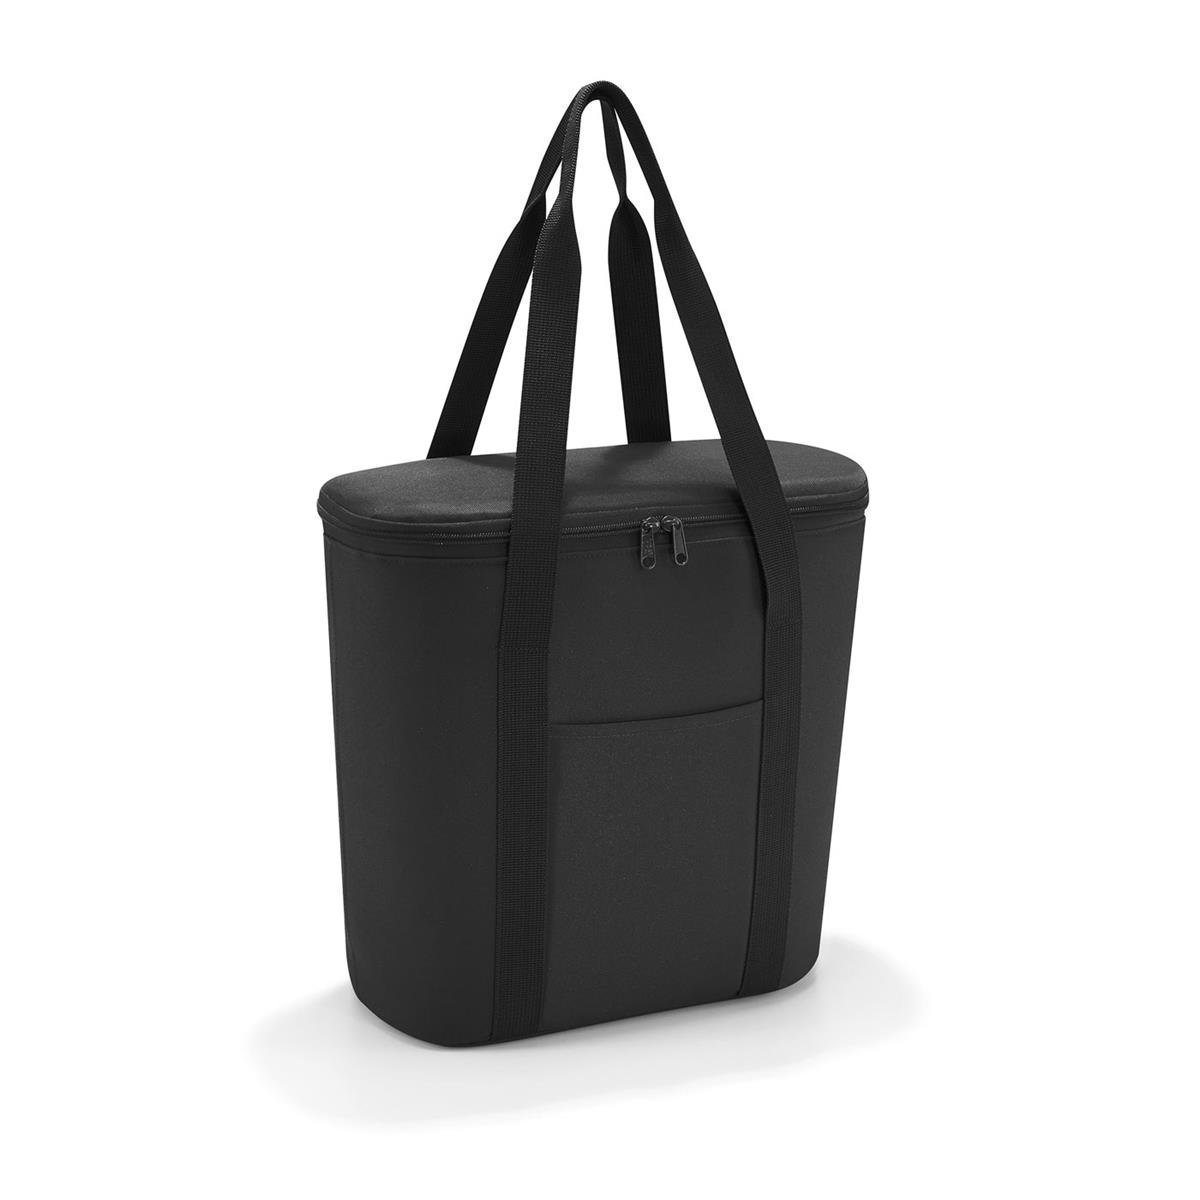 Reisenthel Thermo Shopper Sac de sport, 38  cm, 15  l, Black 38 cm 15 l OV7003